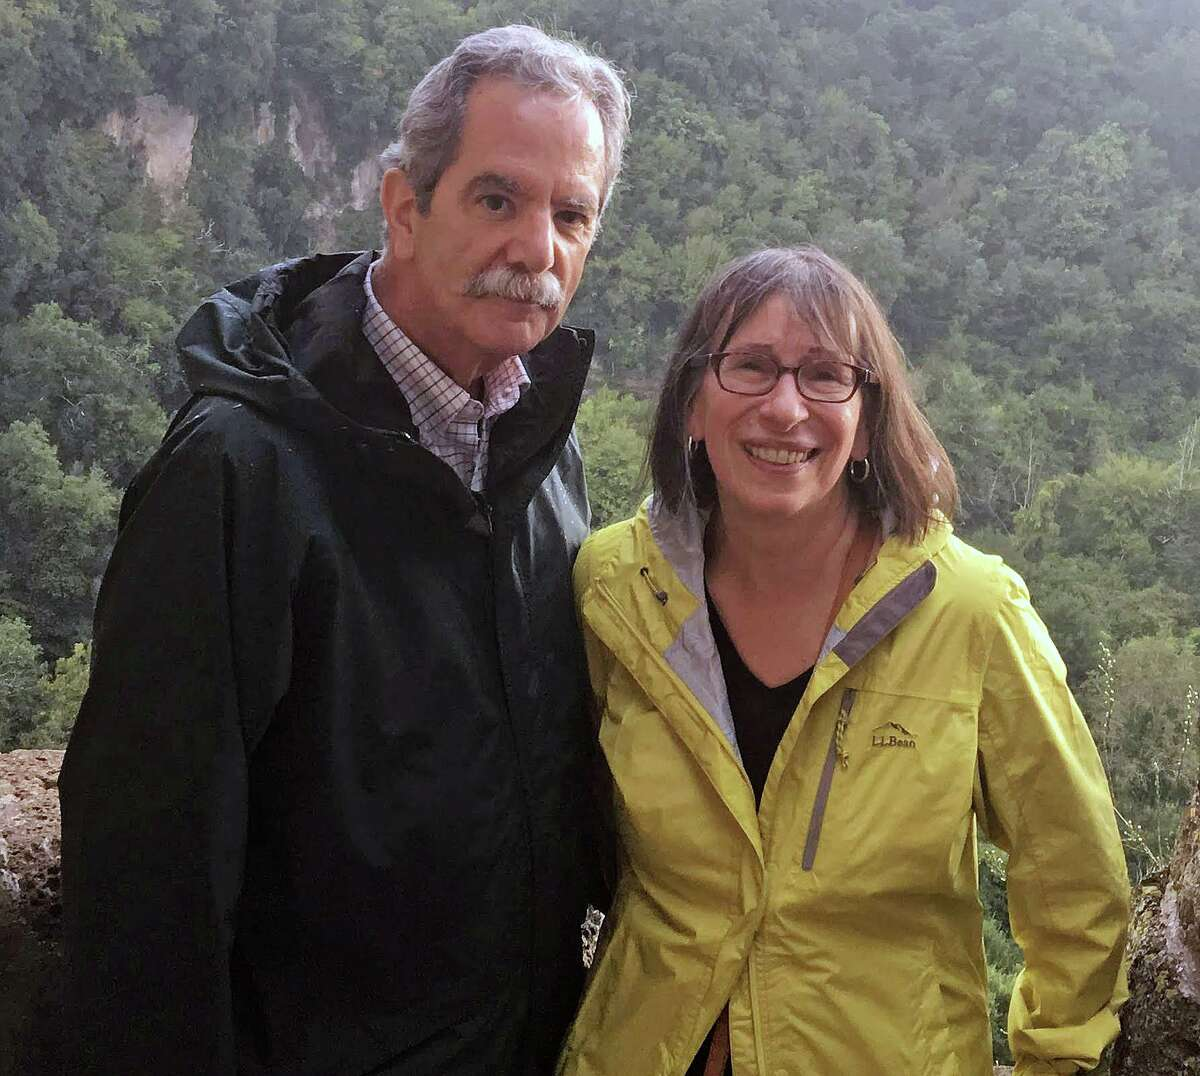 John and Jan Fiore of Norwalk, Conn., will celebrate 50 years of marriage on Saturday, May 29, 2021.